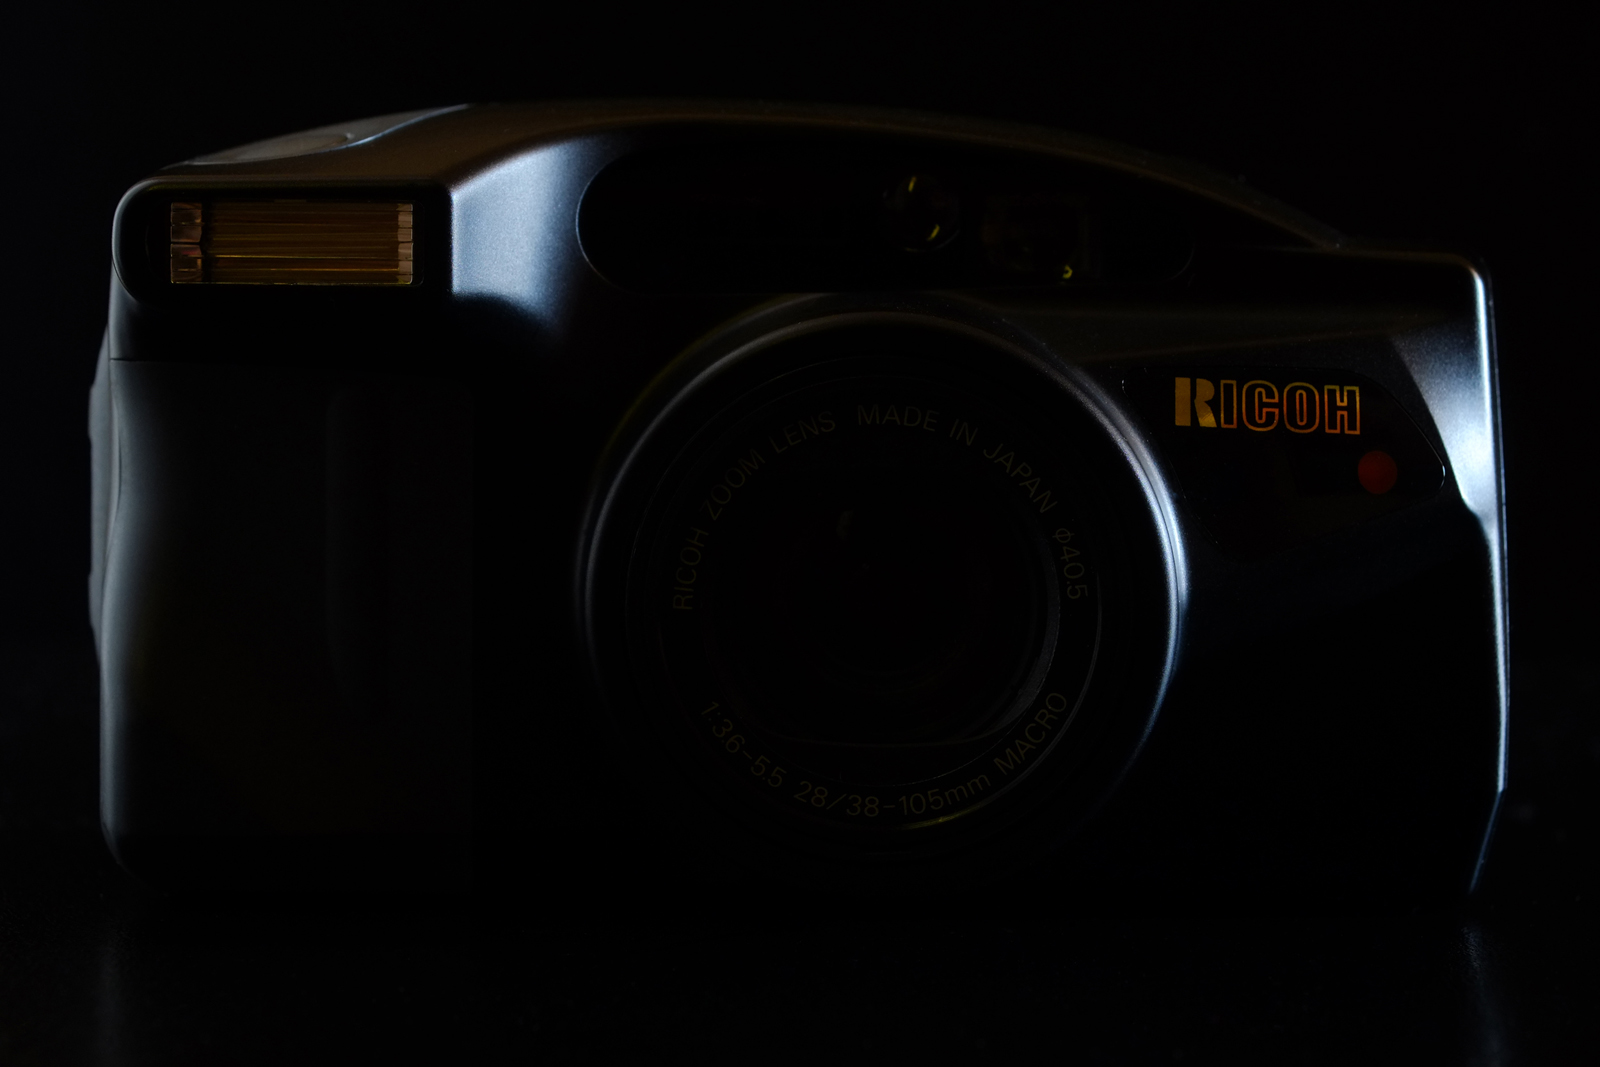 Ricoh RZ-105 Zoom Date